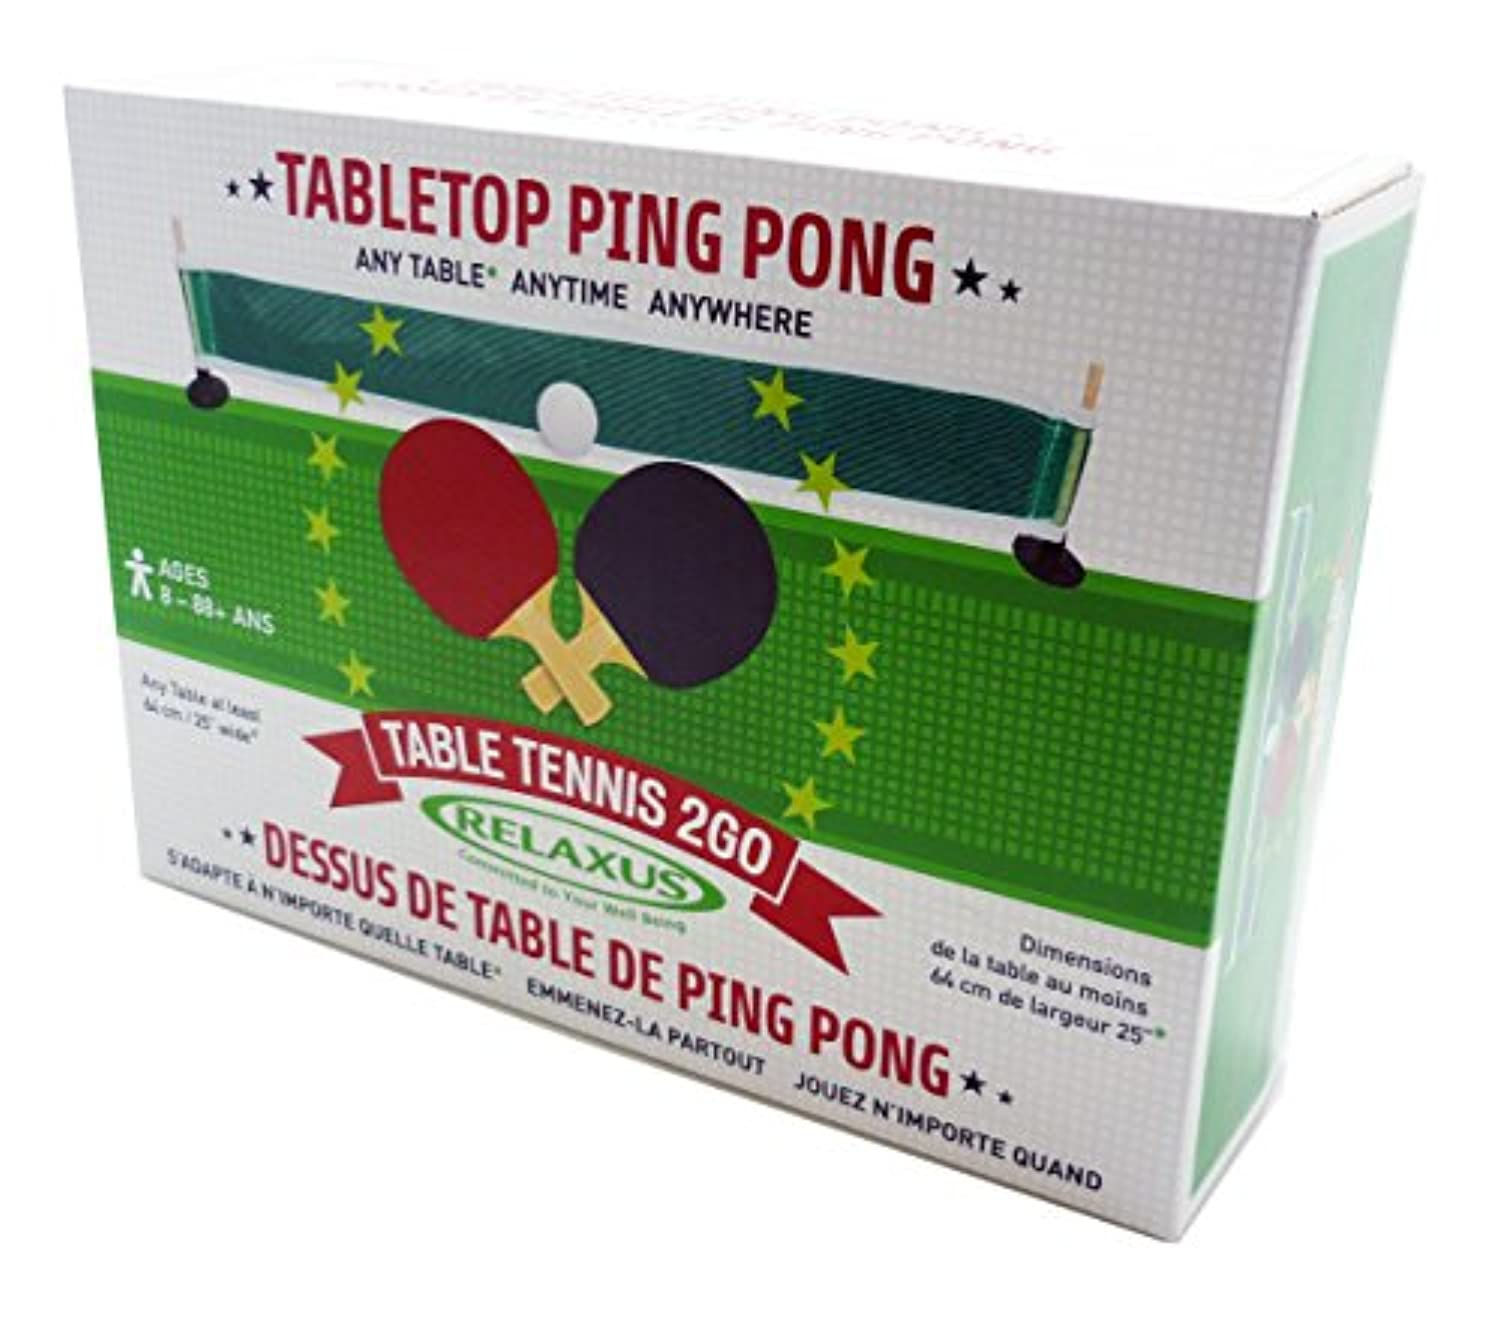 Anywhere Table Tennis to Go Set - Tabletop Ping Pong